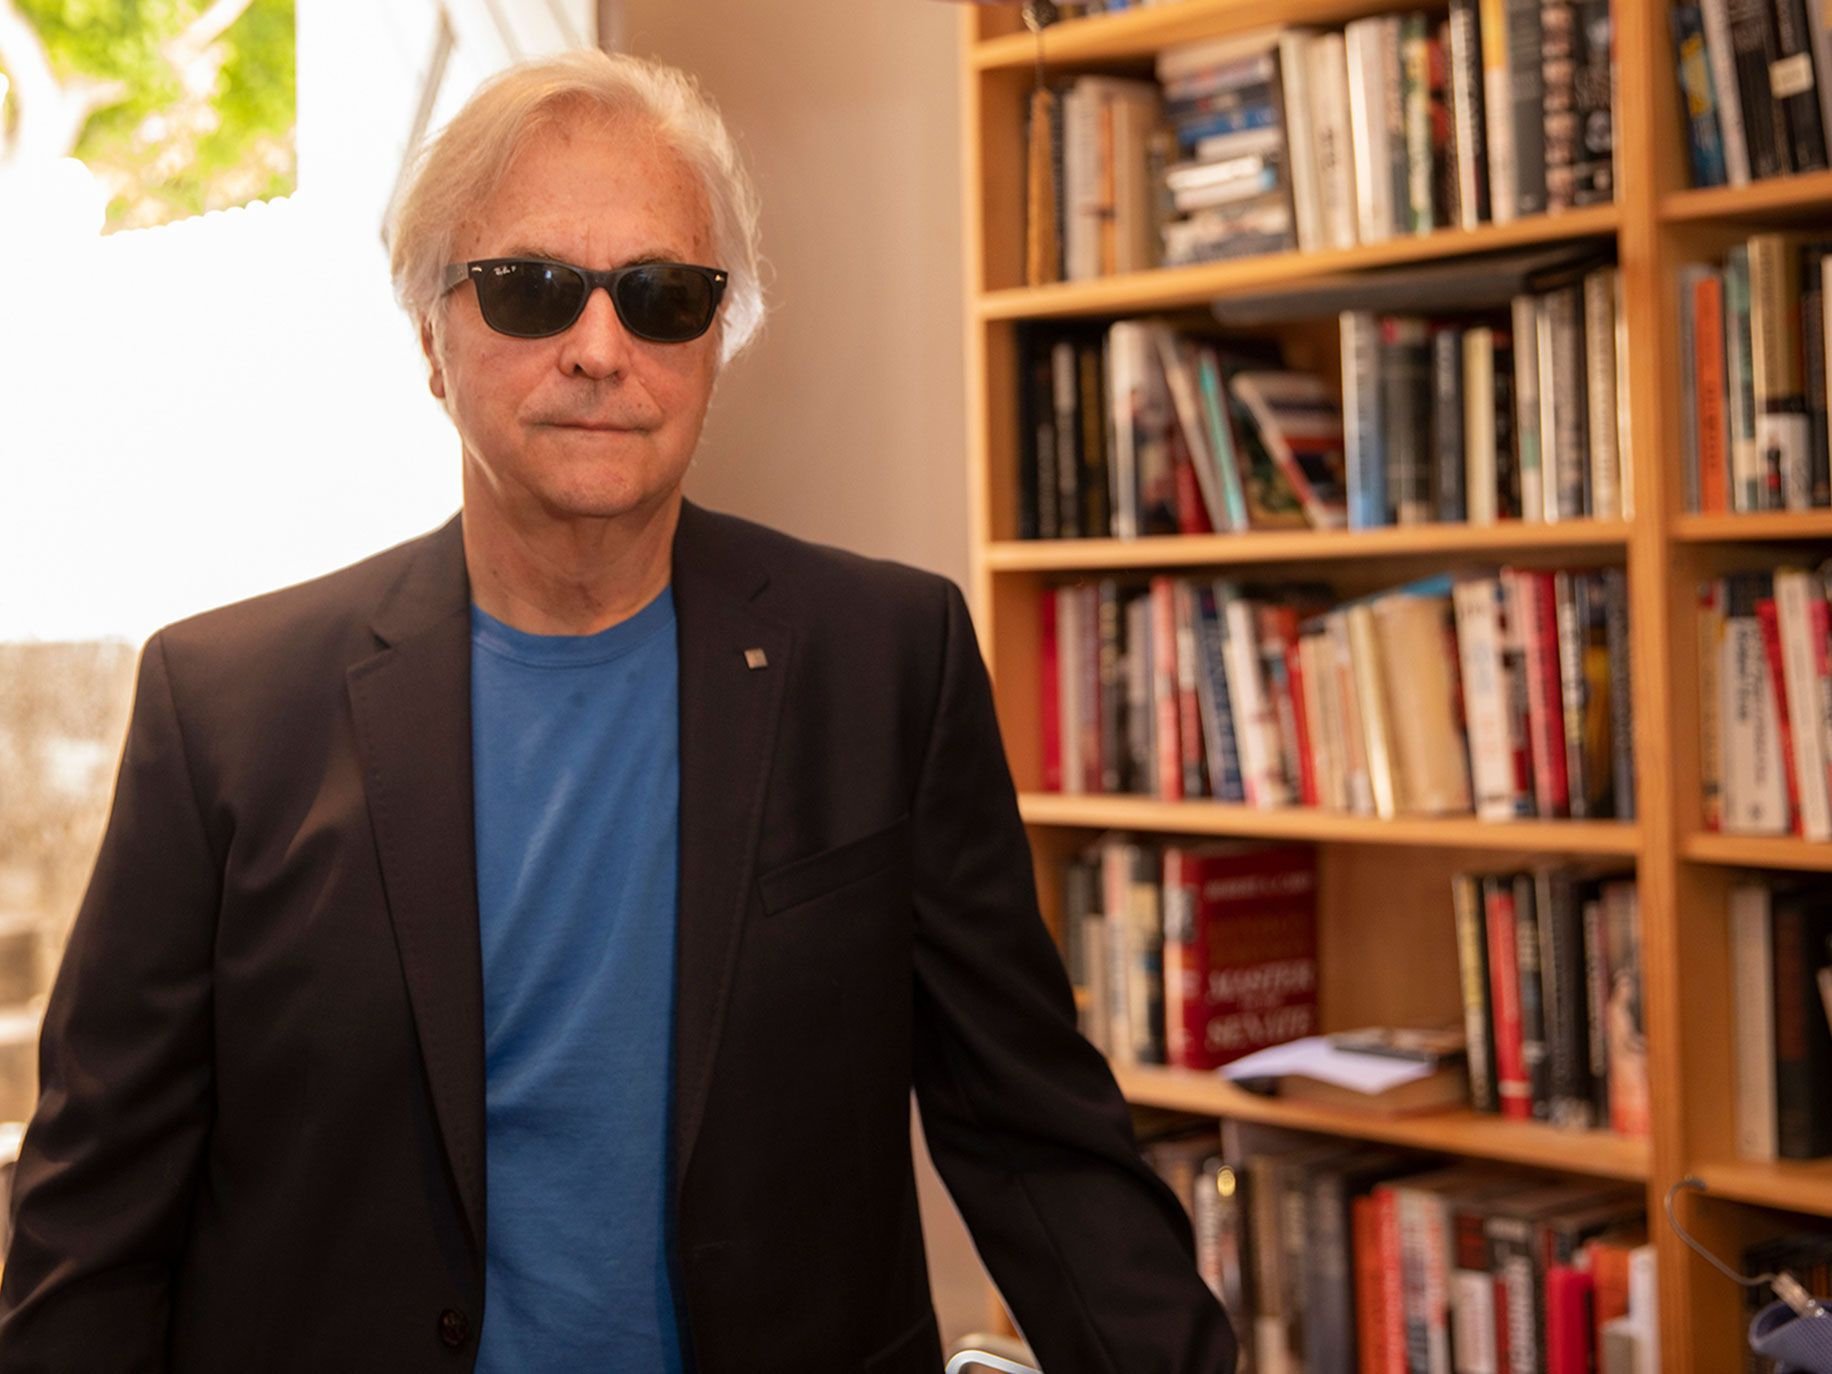 Author David Talbot